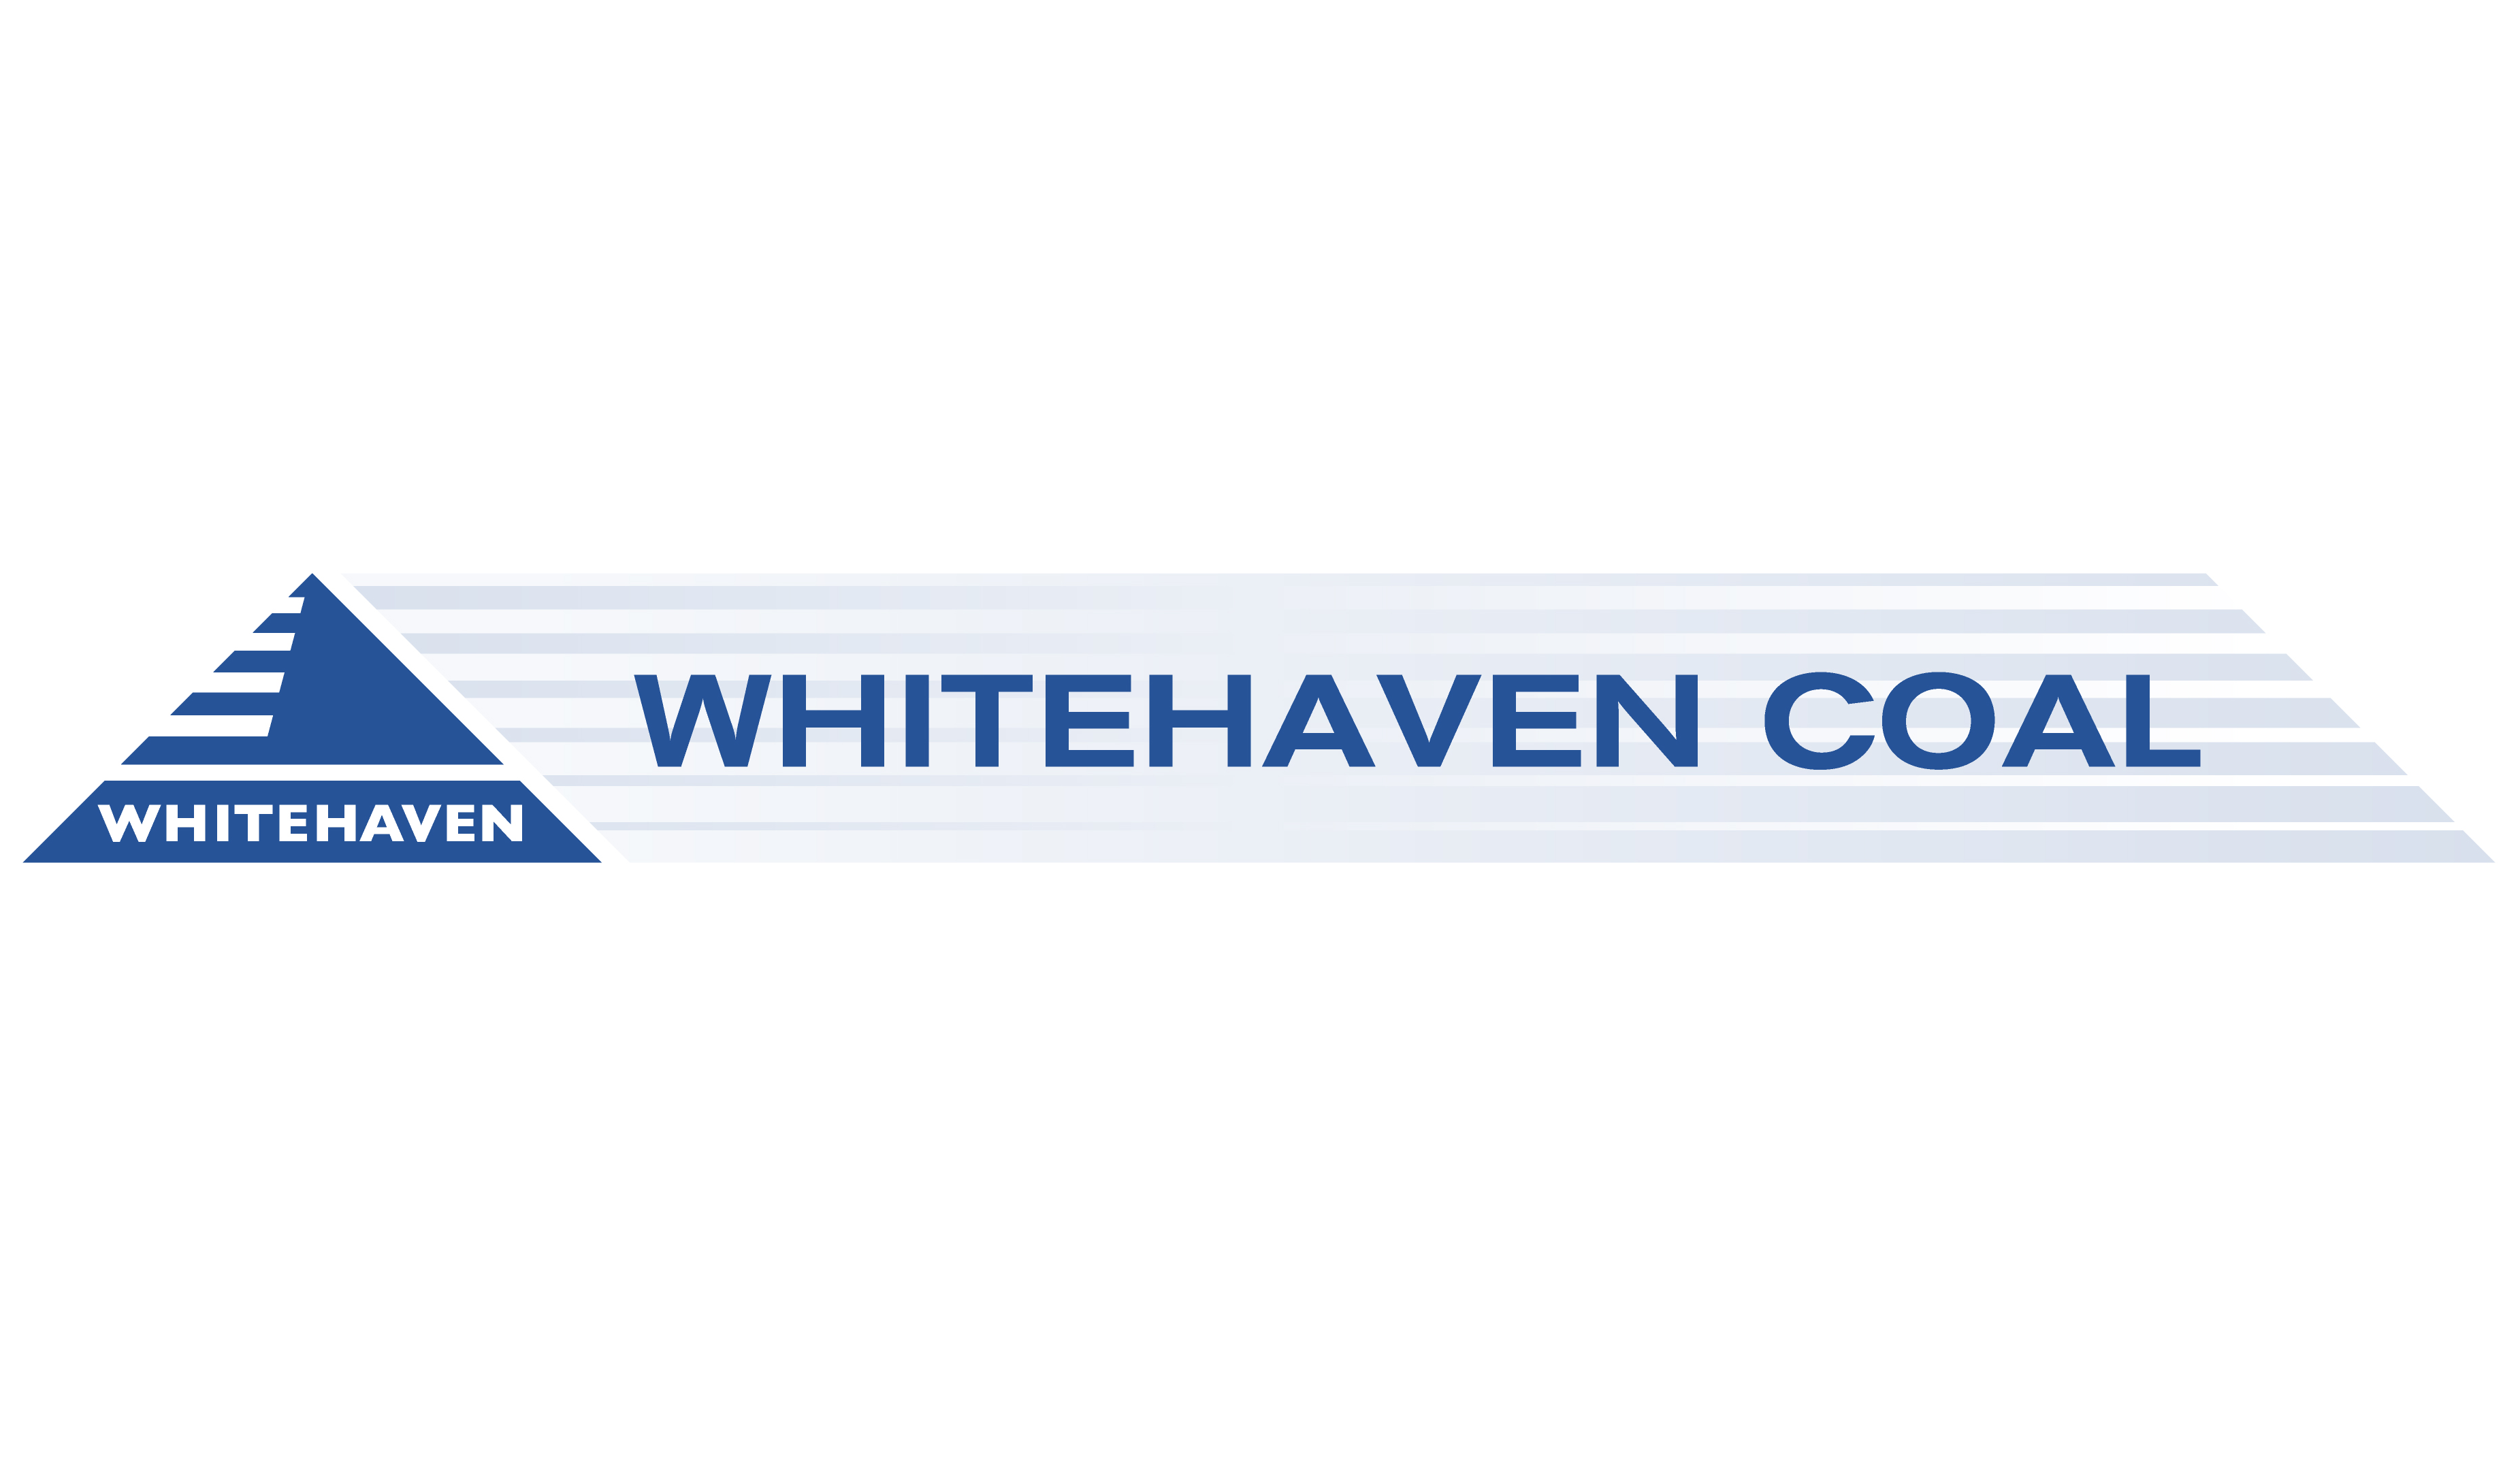 Whitehaven coal releases first half financial results for 2015